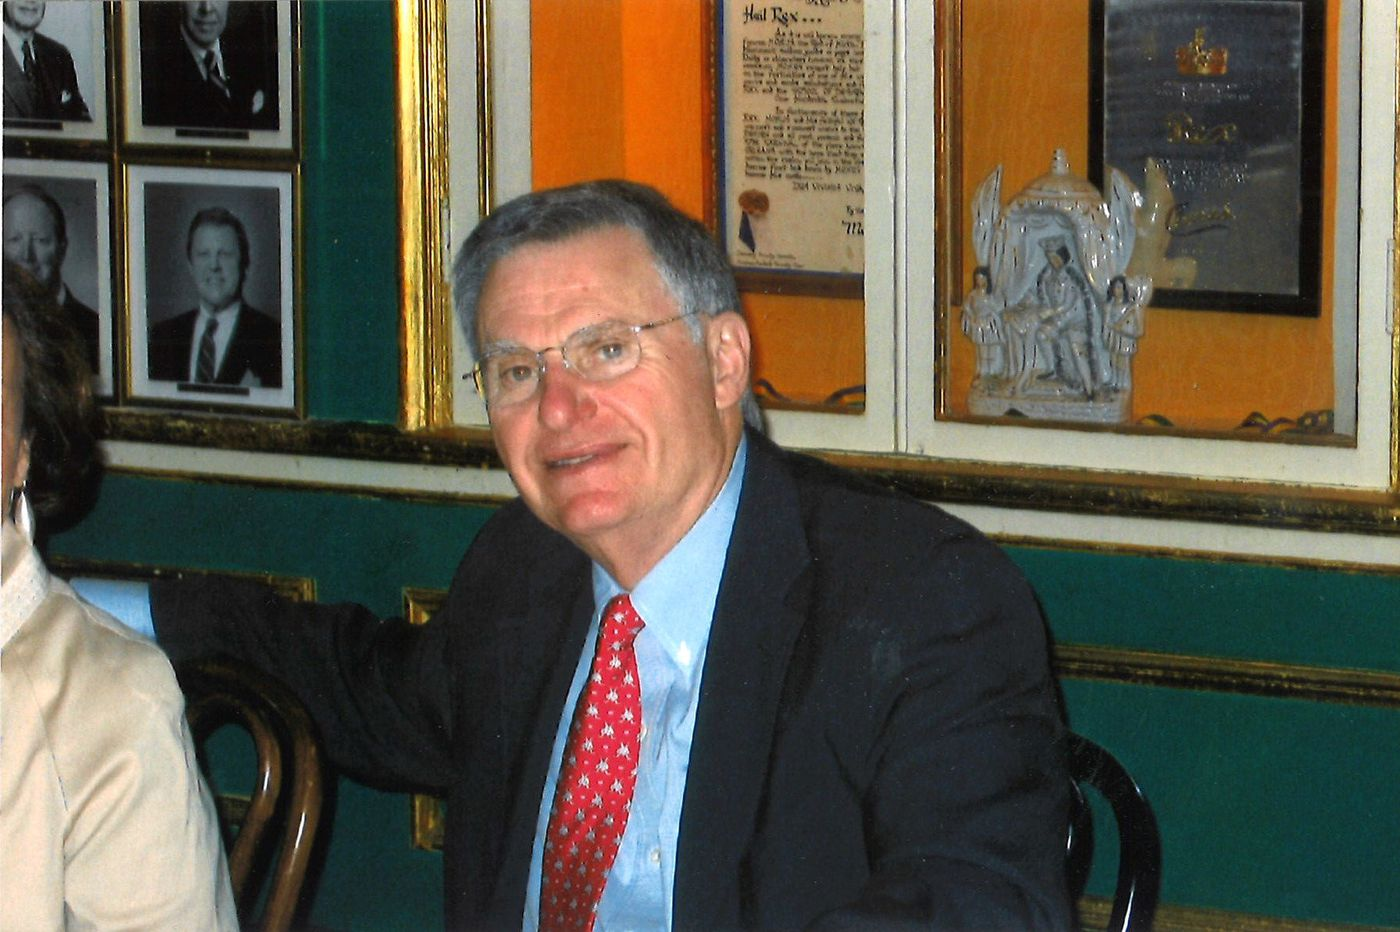 Dr. Allen R. Myers, 85, rheumatologist and former dean of medicine at Temple University